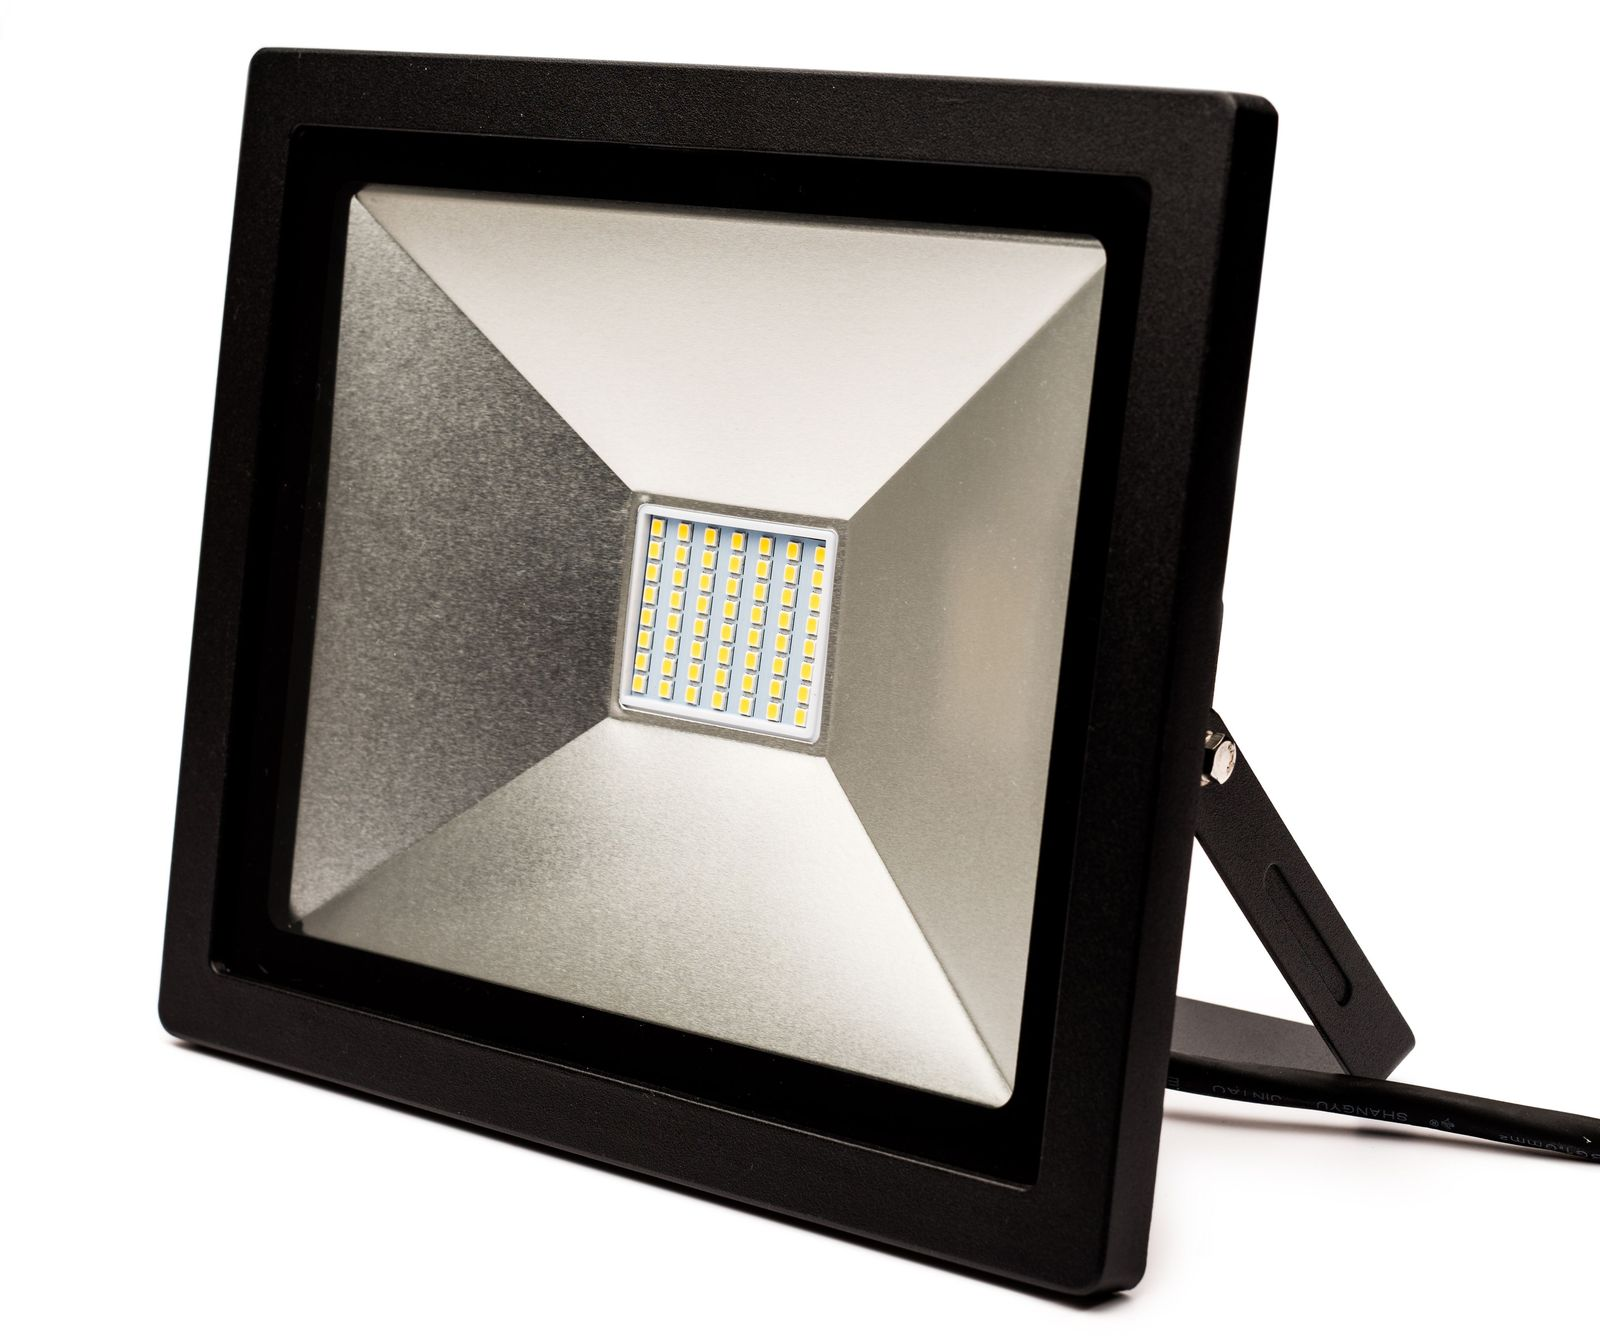 LED-valonheitin FTLight Slim Work, 100W, IP44, 8000lm, 4500K, musta